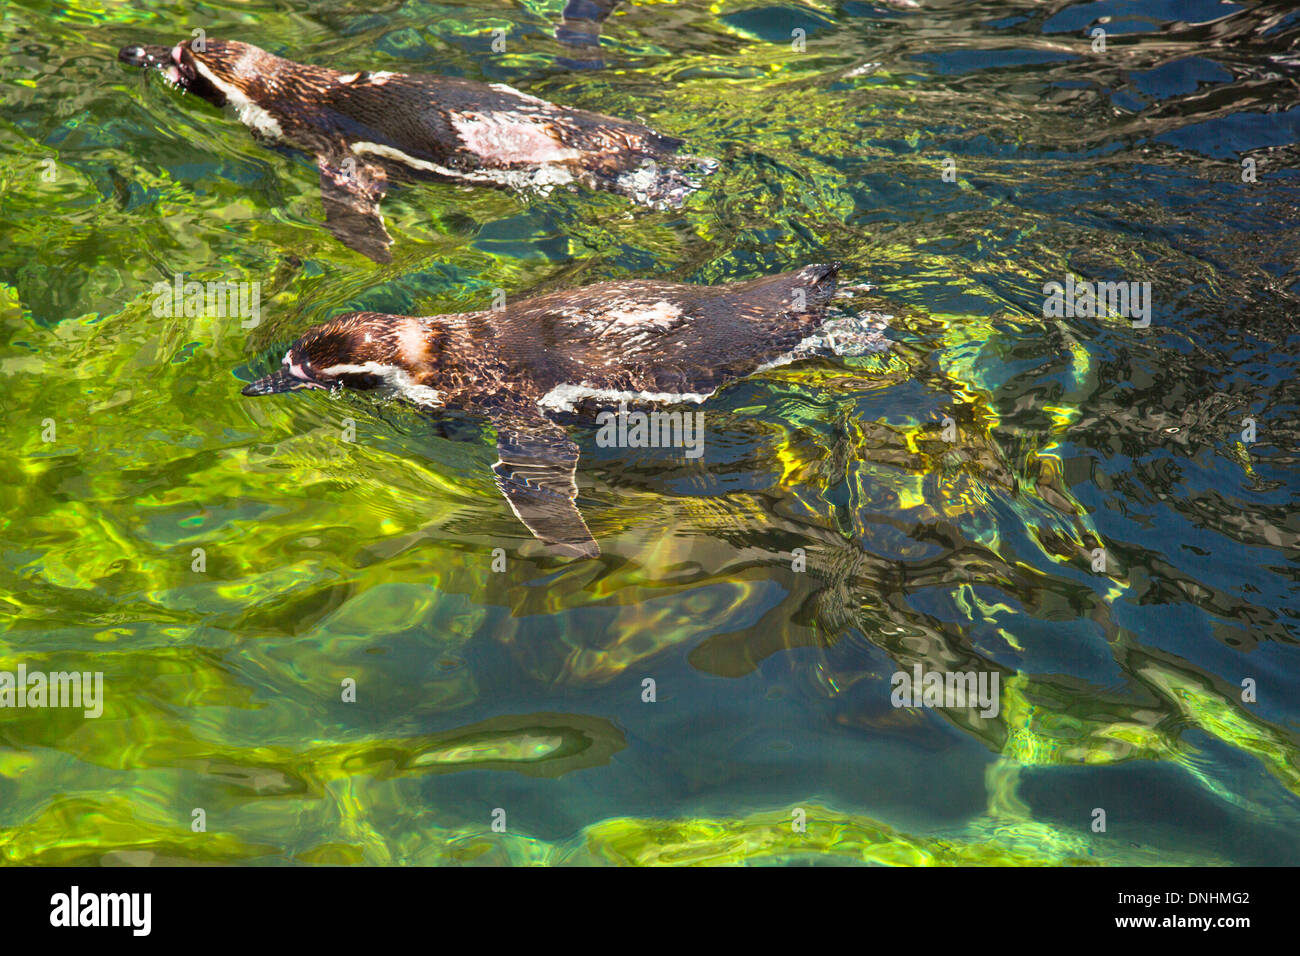 High angle view of Humboldt penguins (Spheniscus Humboldt) swimming in a pond, Barcelona Zoo, Barcelona, Catalonia, Spain Stock Photo